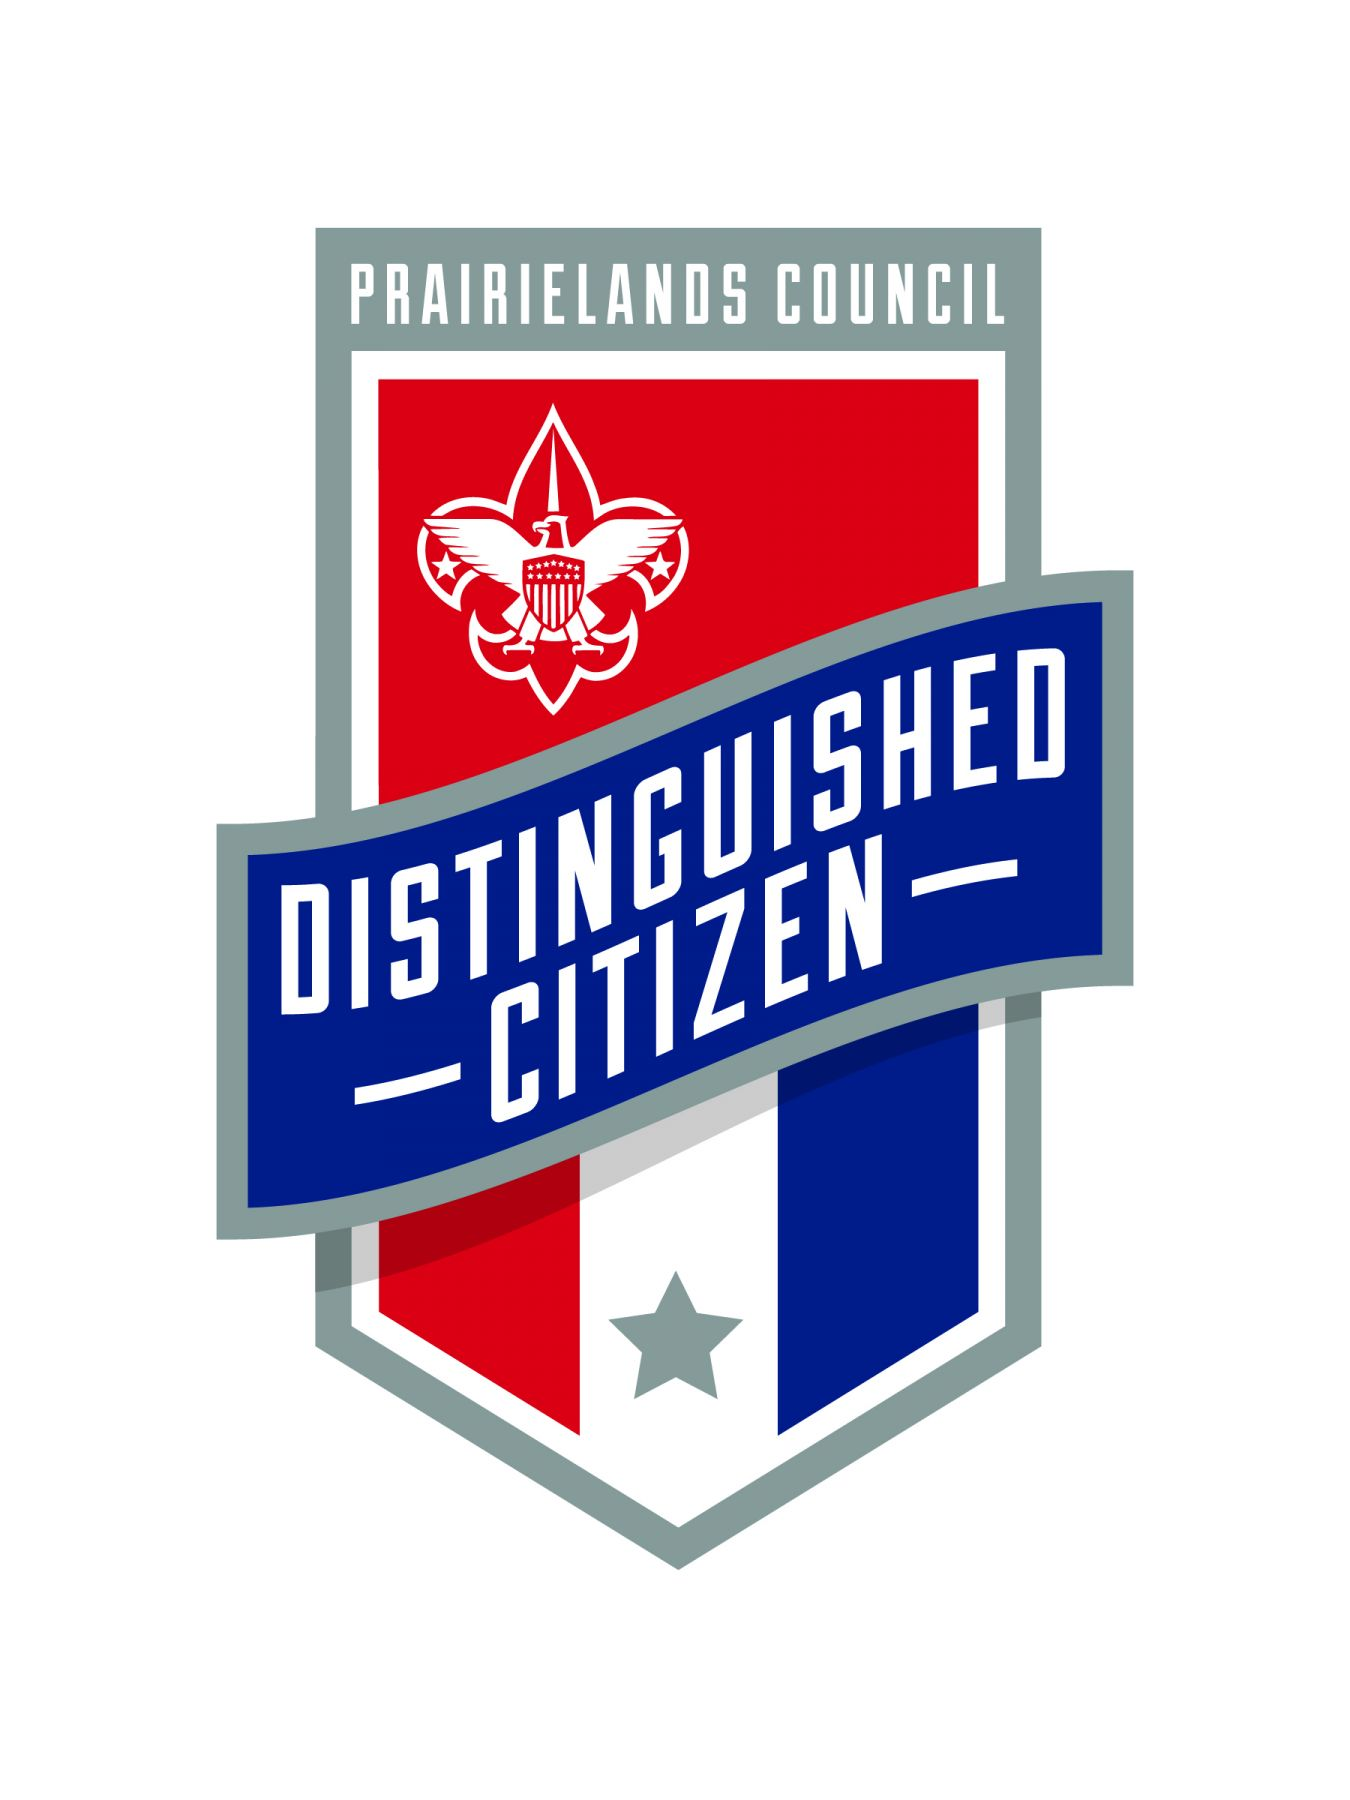 Distinguished Citizen event logo